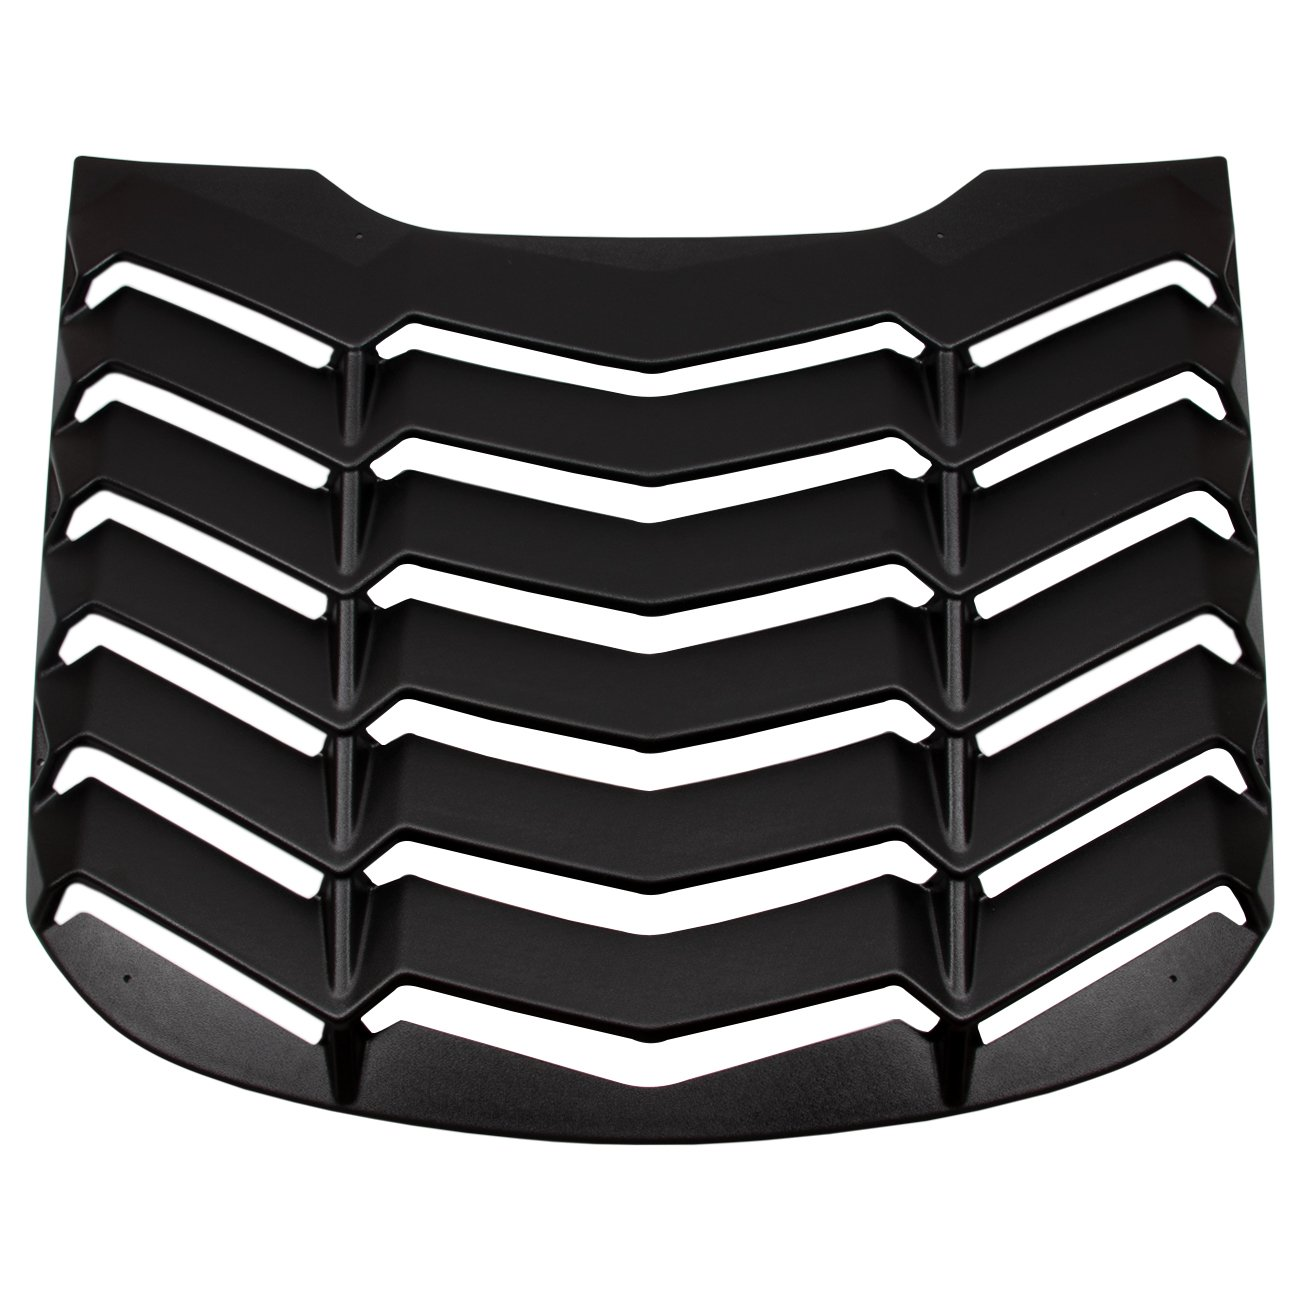 Yoursme Rear and Side Window Louvers Scoop Matte Black ABS Sun Shade Cover in GT Lambo Style Fits for Ford Mustang 2015 2016 2017 2018 2019